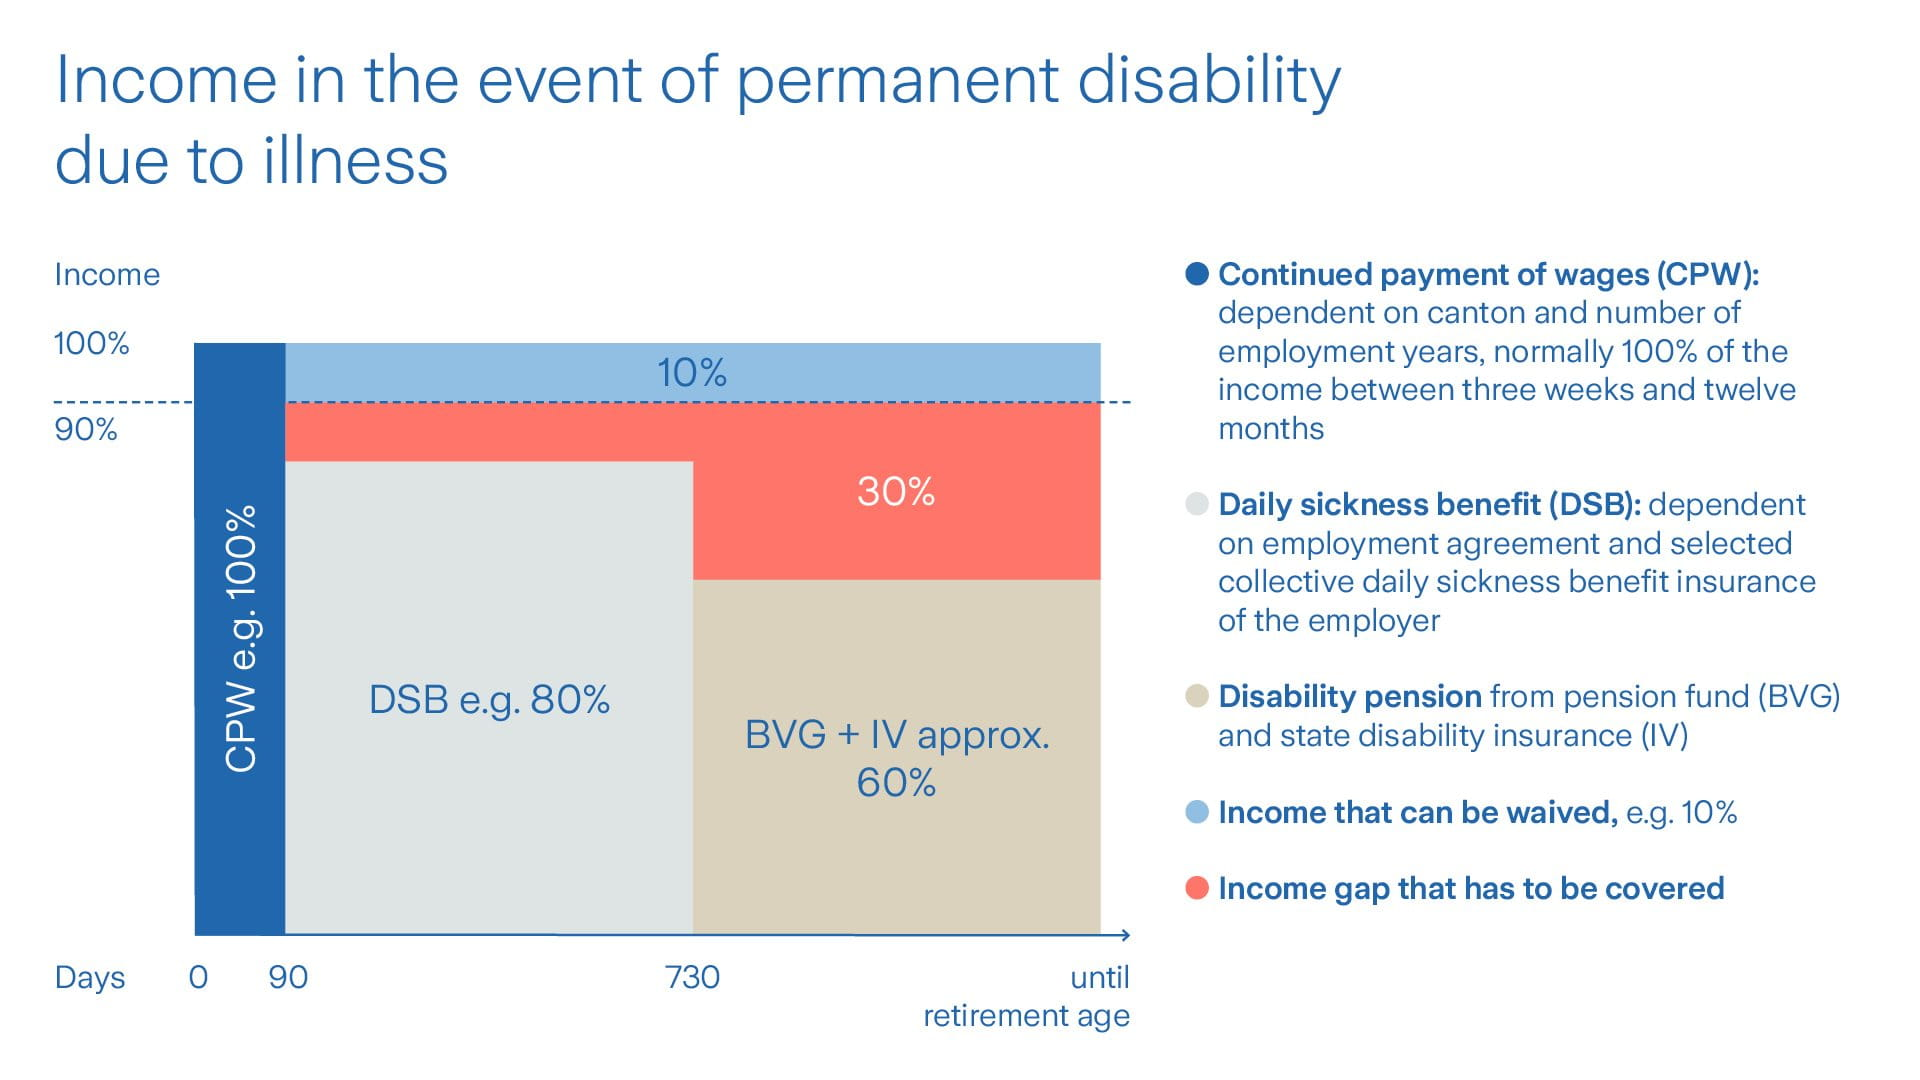 Graphic event of permanent disability due to illness